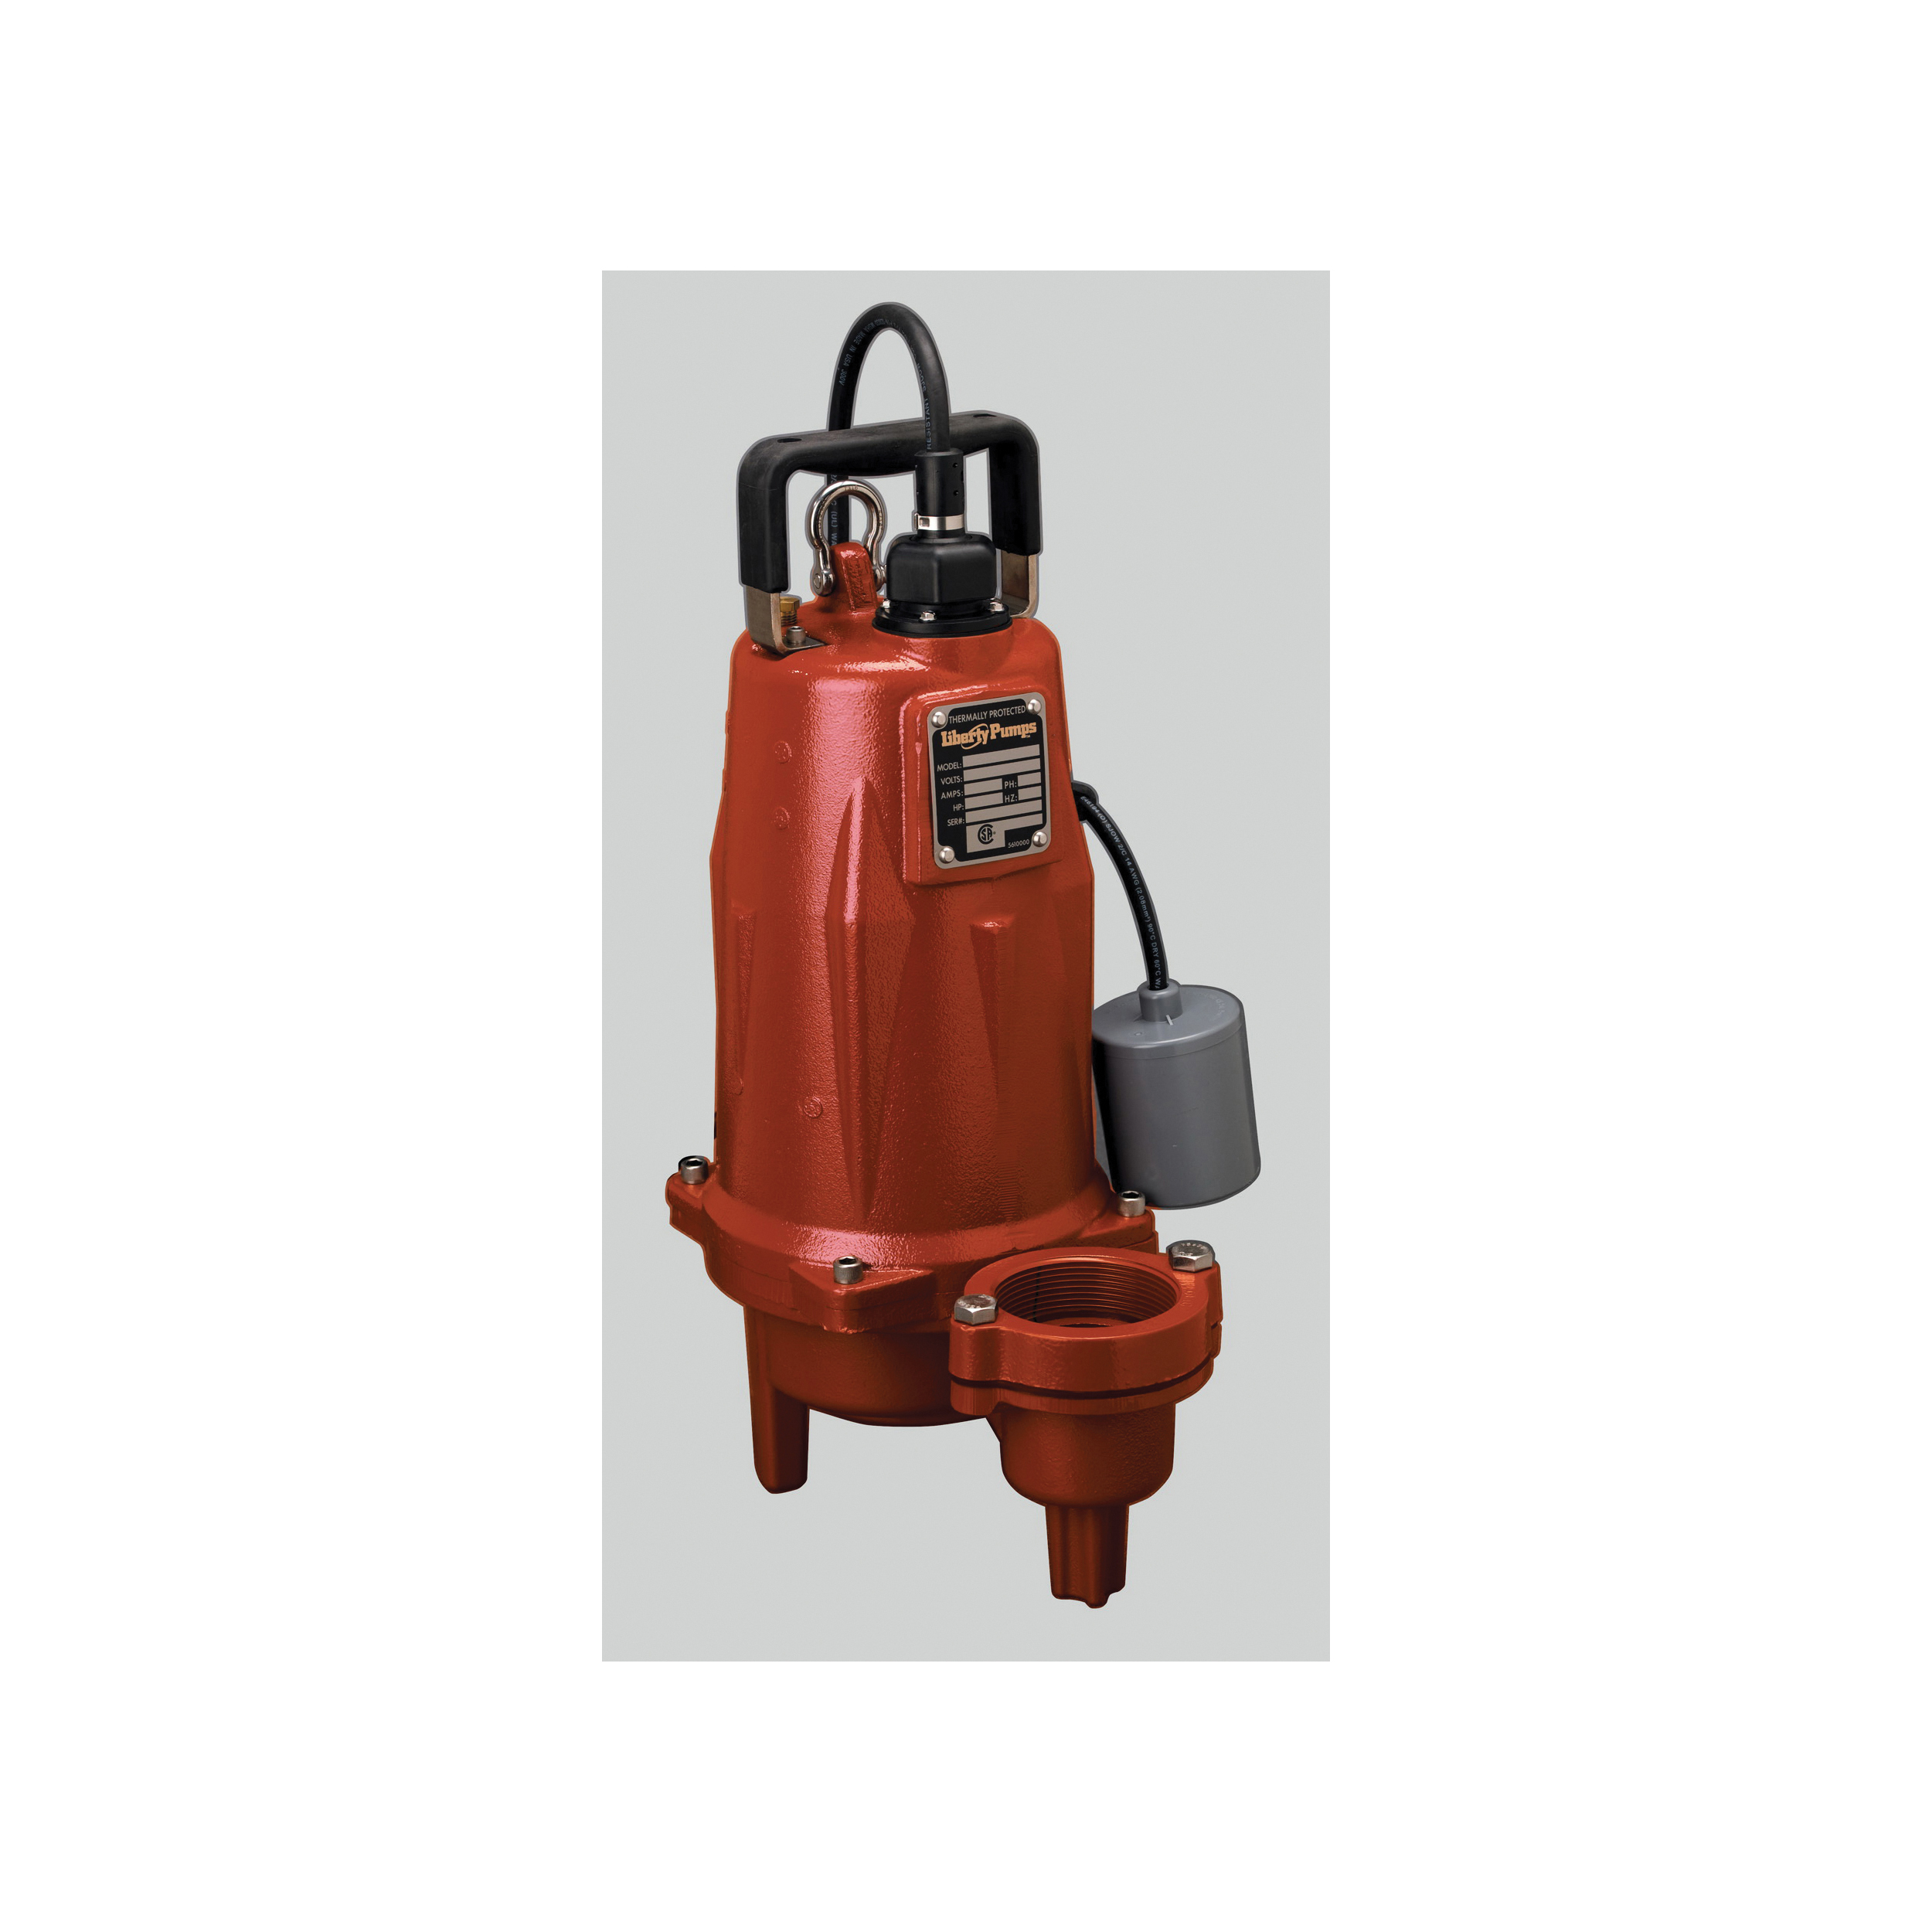 Liberty Pumps® LEH154M2-2 LEH50 3-Phase High Head Sewage Pump, 1-1/2 hp, 440 to 480 VAC, 2 in Flanged Outlet, Cast Iron, 5.3 A